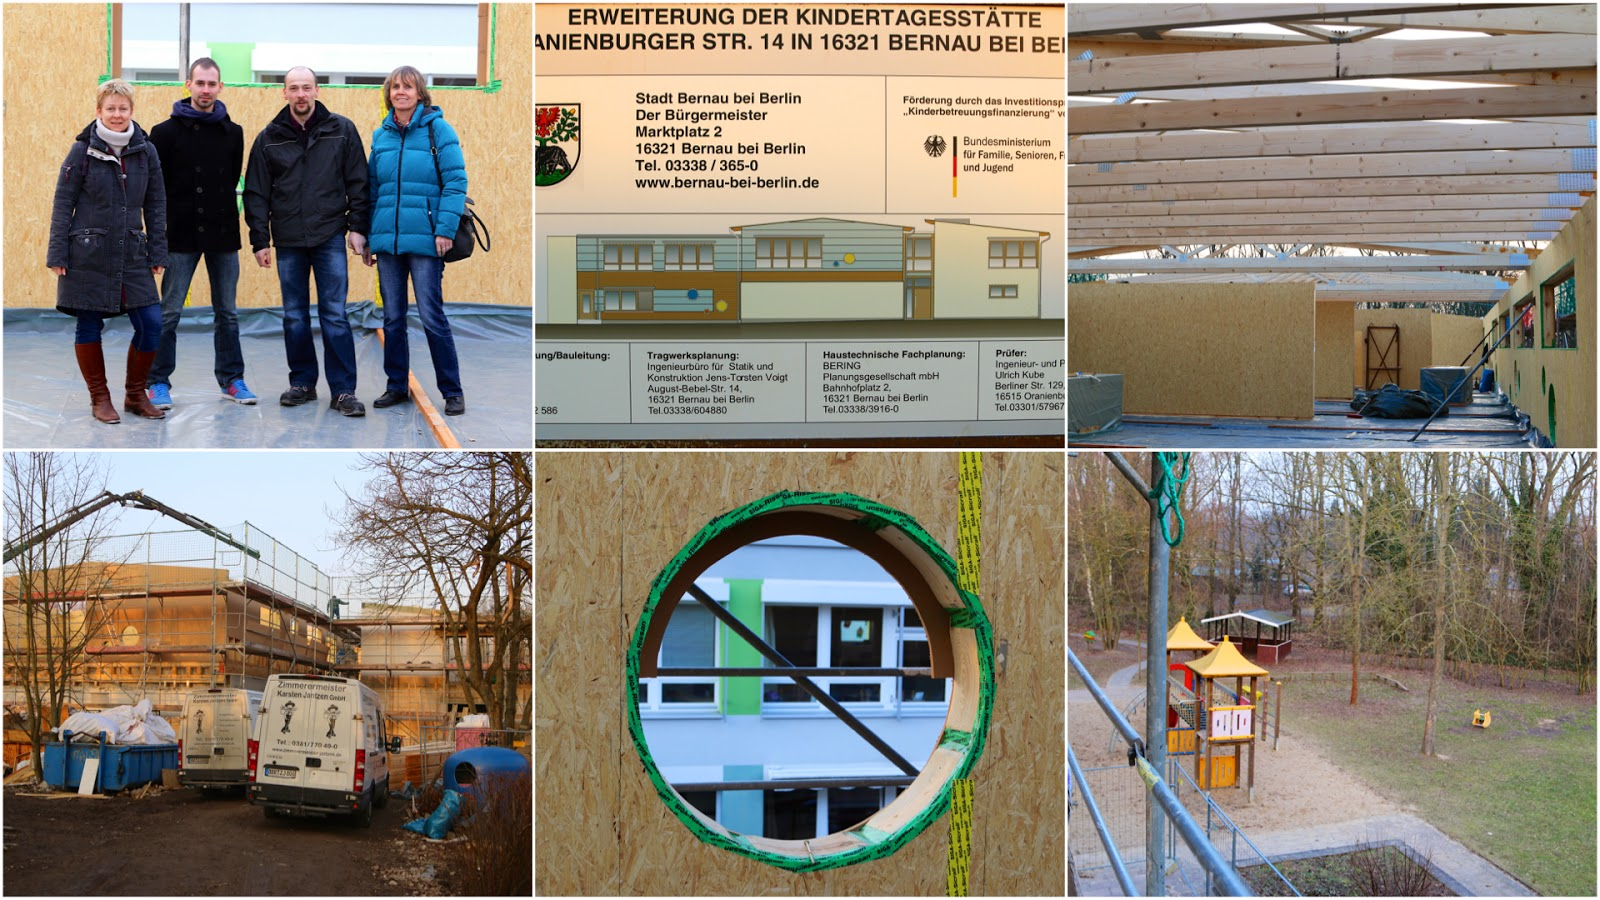 Vor Ort: Montessori Kindergarten und Kita-Situation in Bernau ...